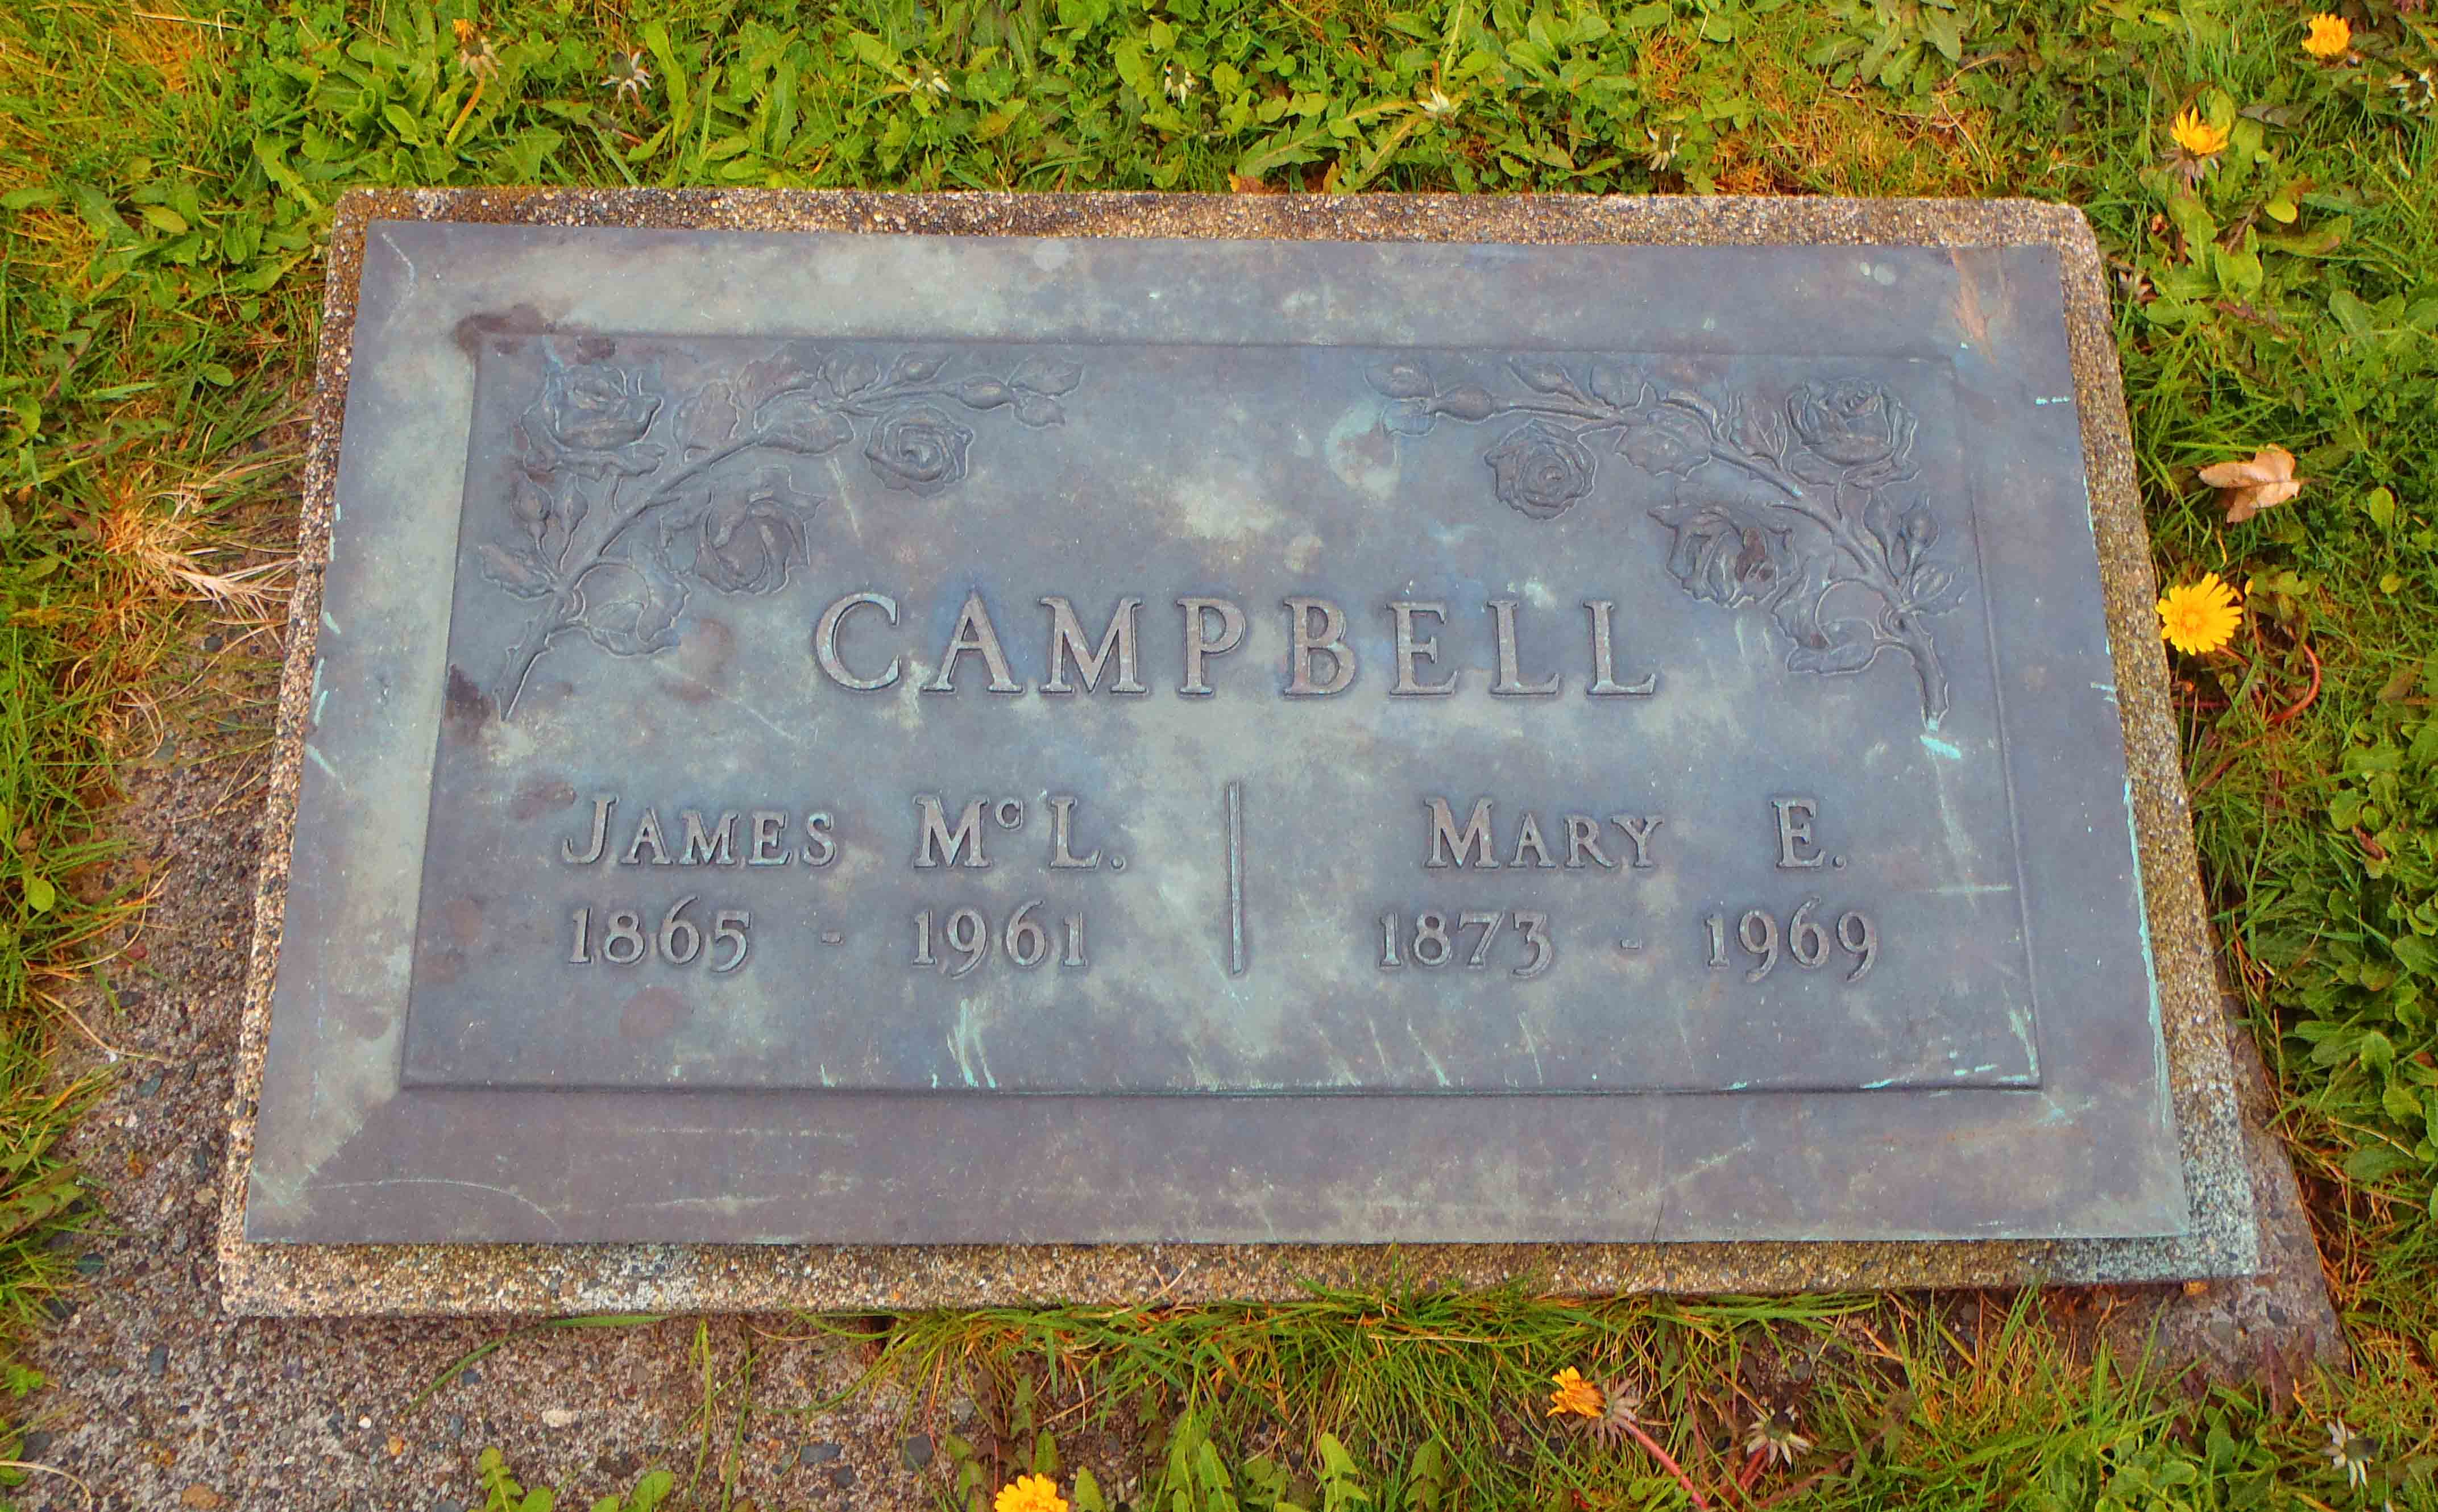 James McLeod Campbell tomb inscription